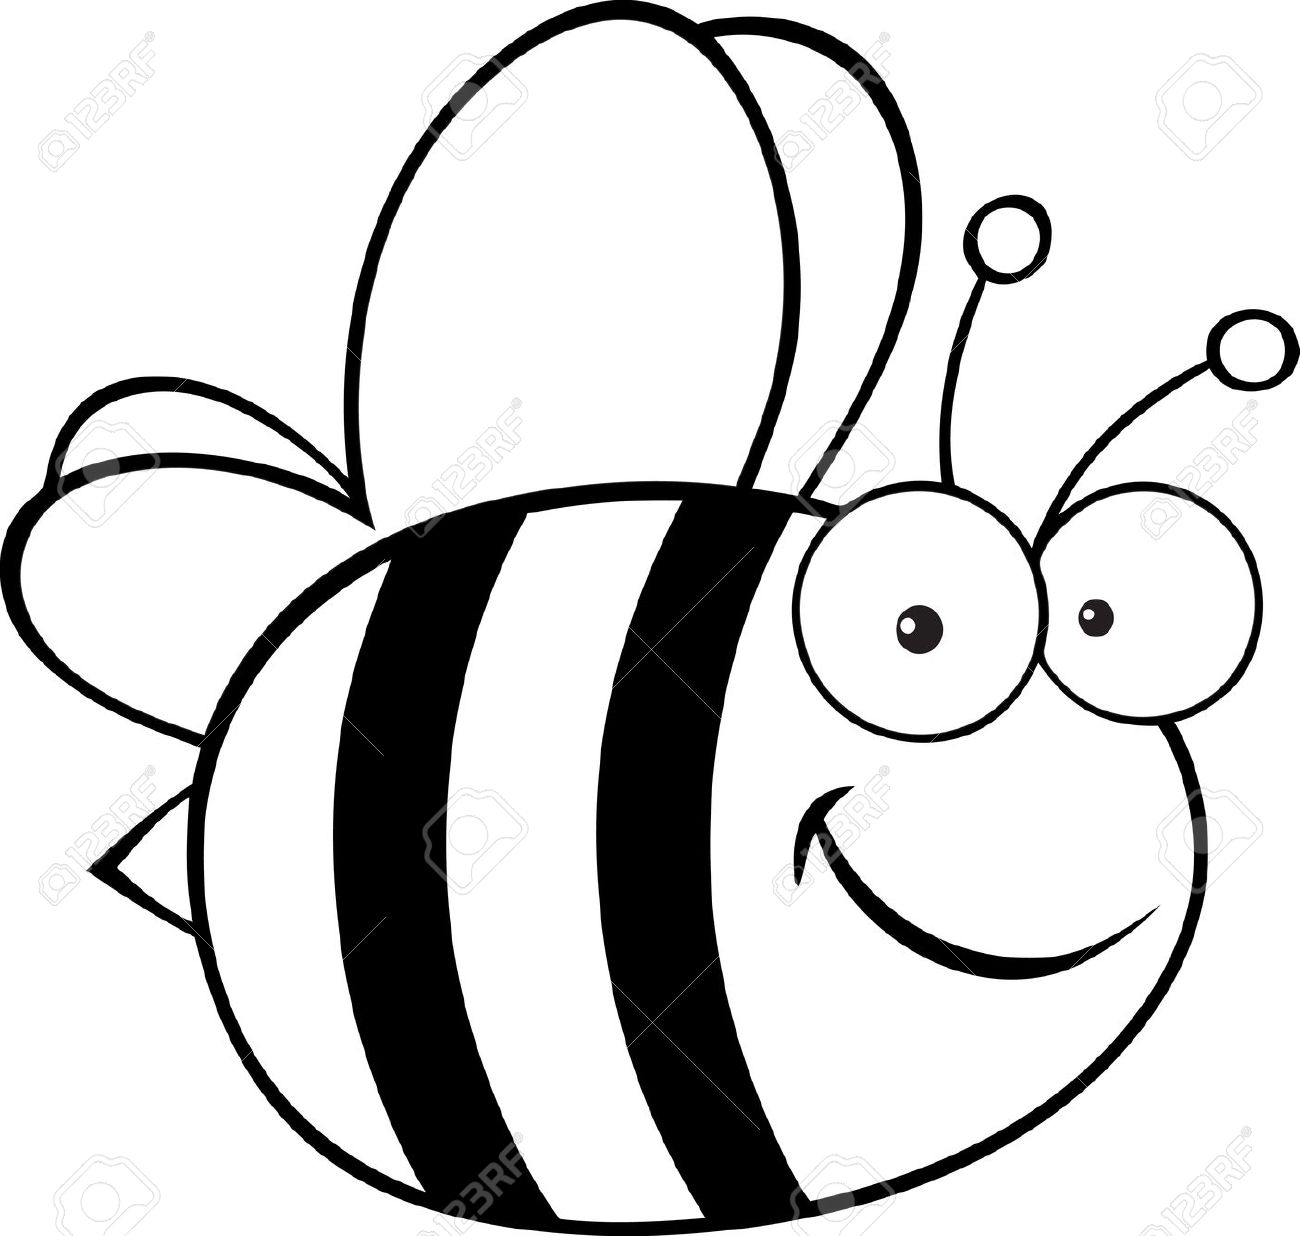 Honey black and white. Bee clipart sketch